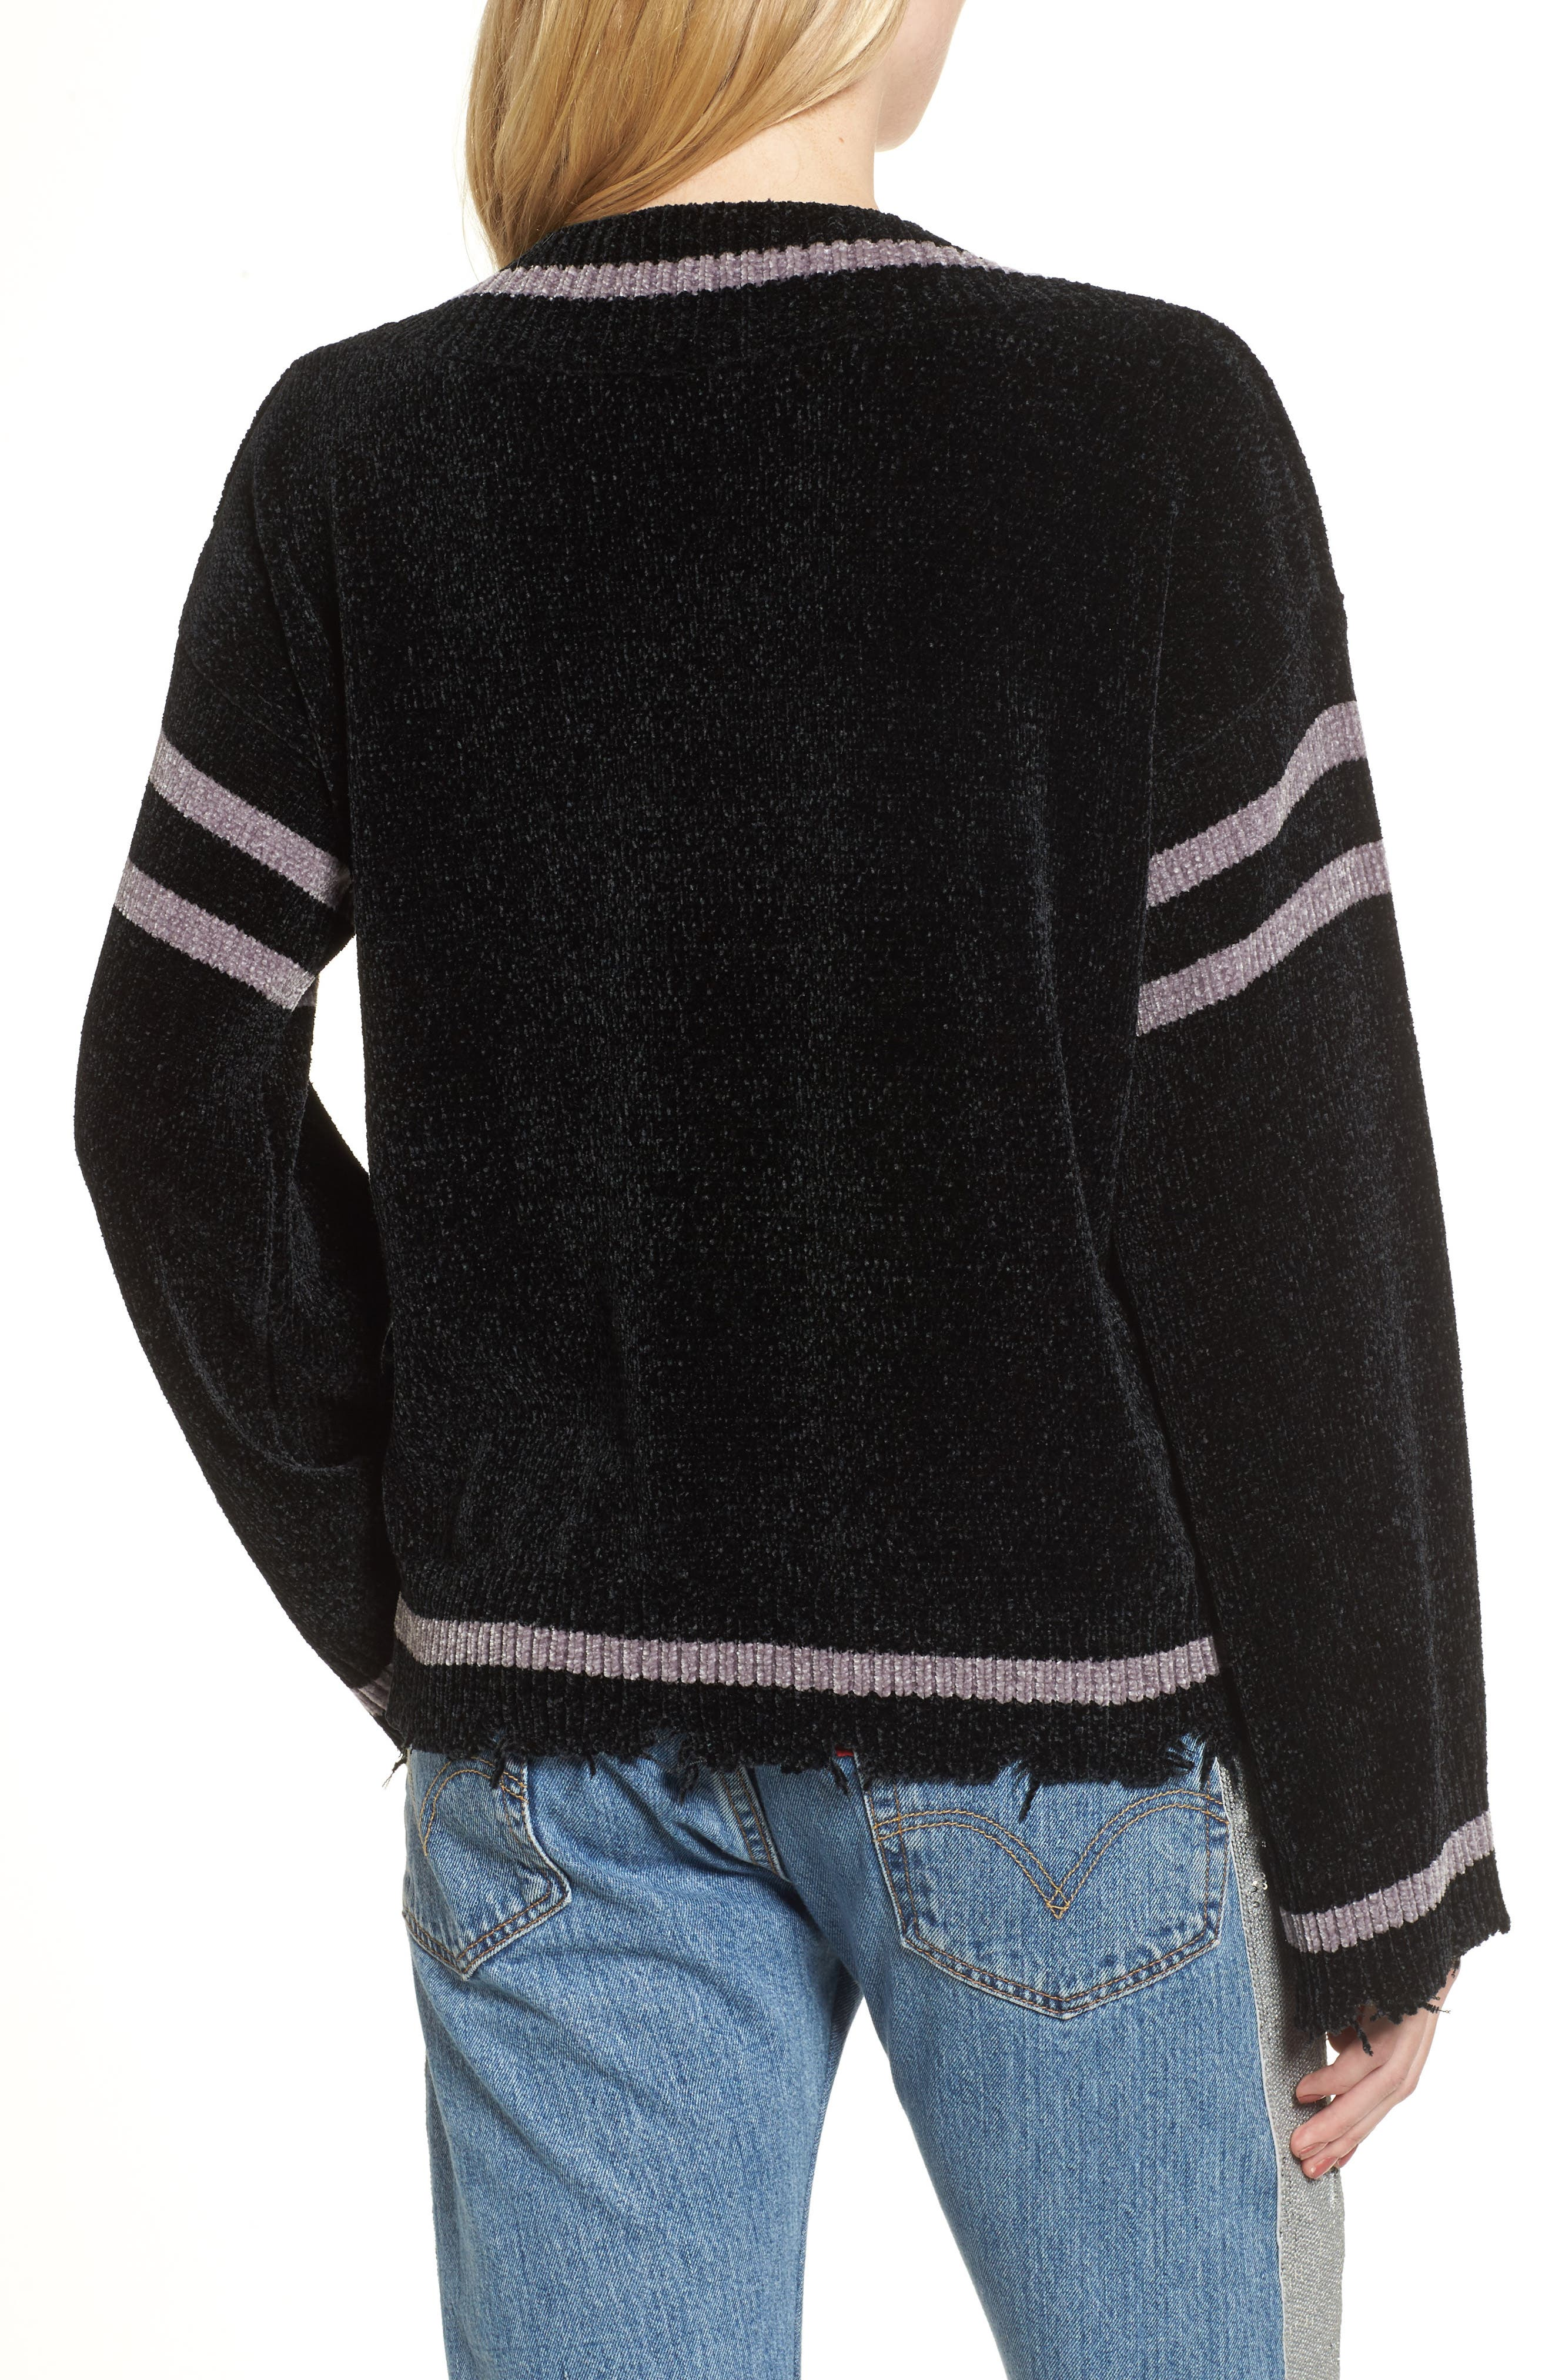 Oversize V-Neck Sweater,                             Alternate thumbnail 2, color,                             Black/ Med. Heather Grey